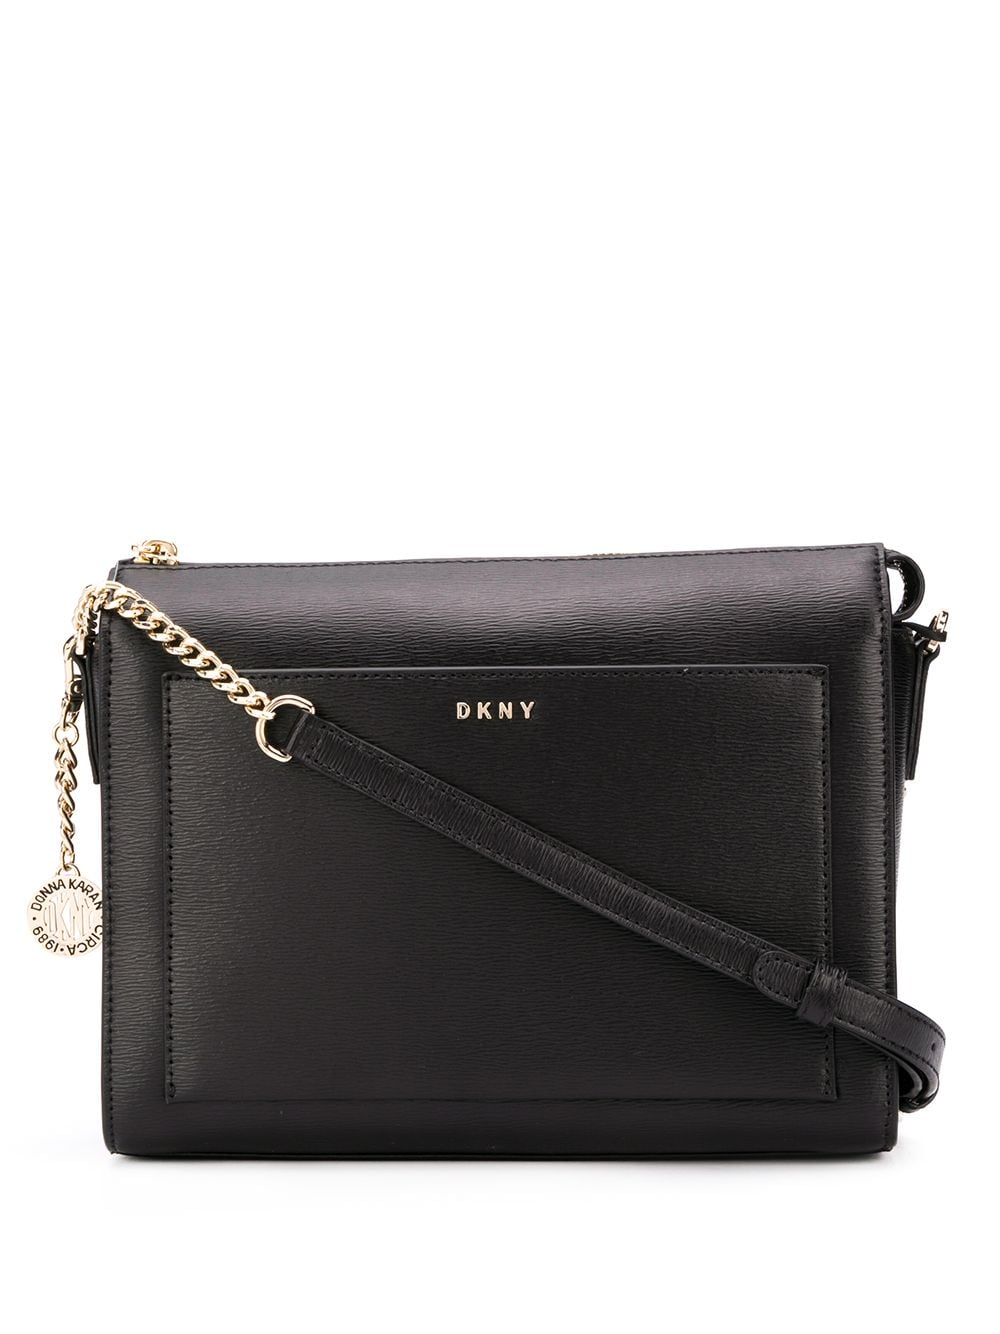 Bryant Leather Crossbody Bag